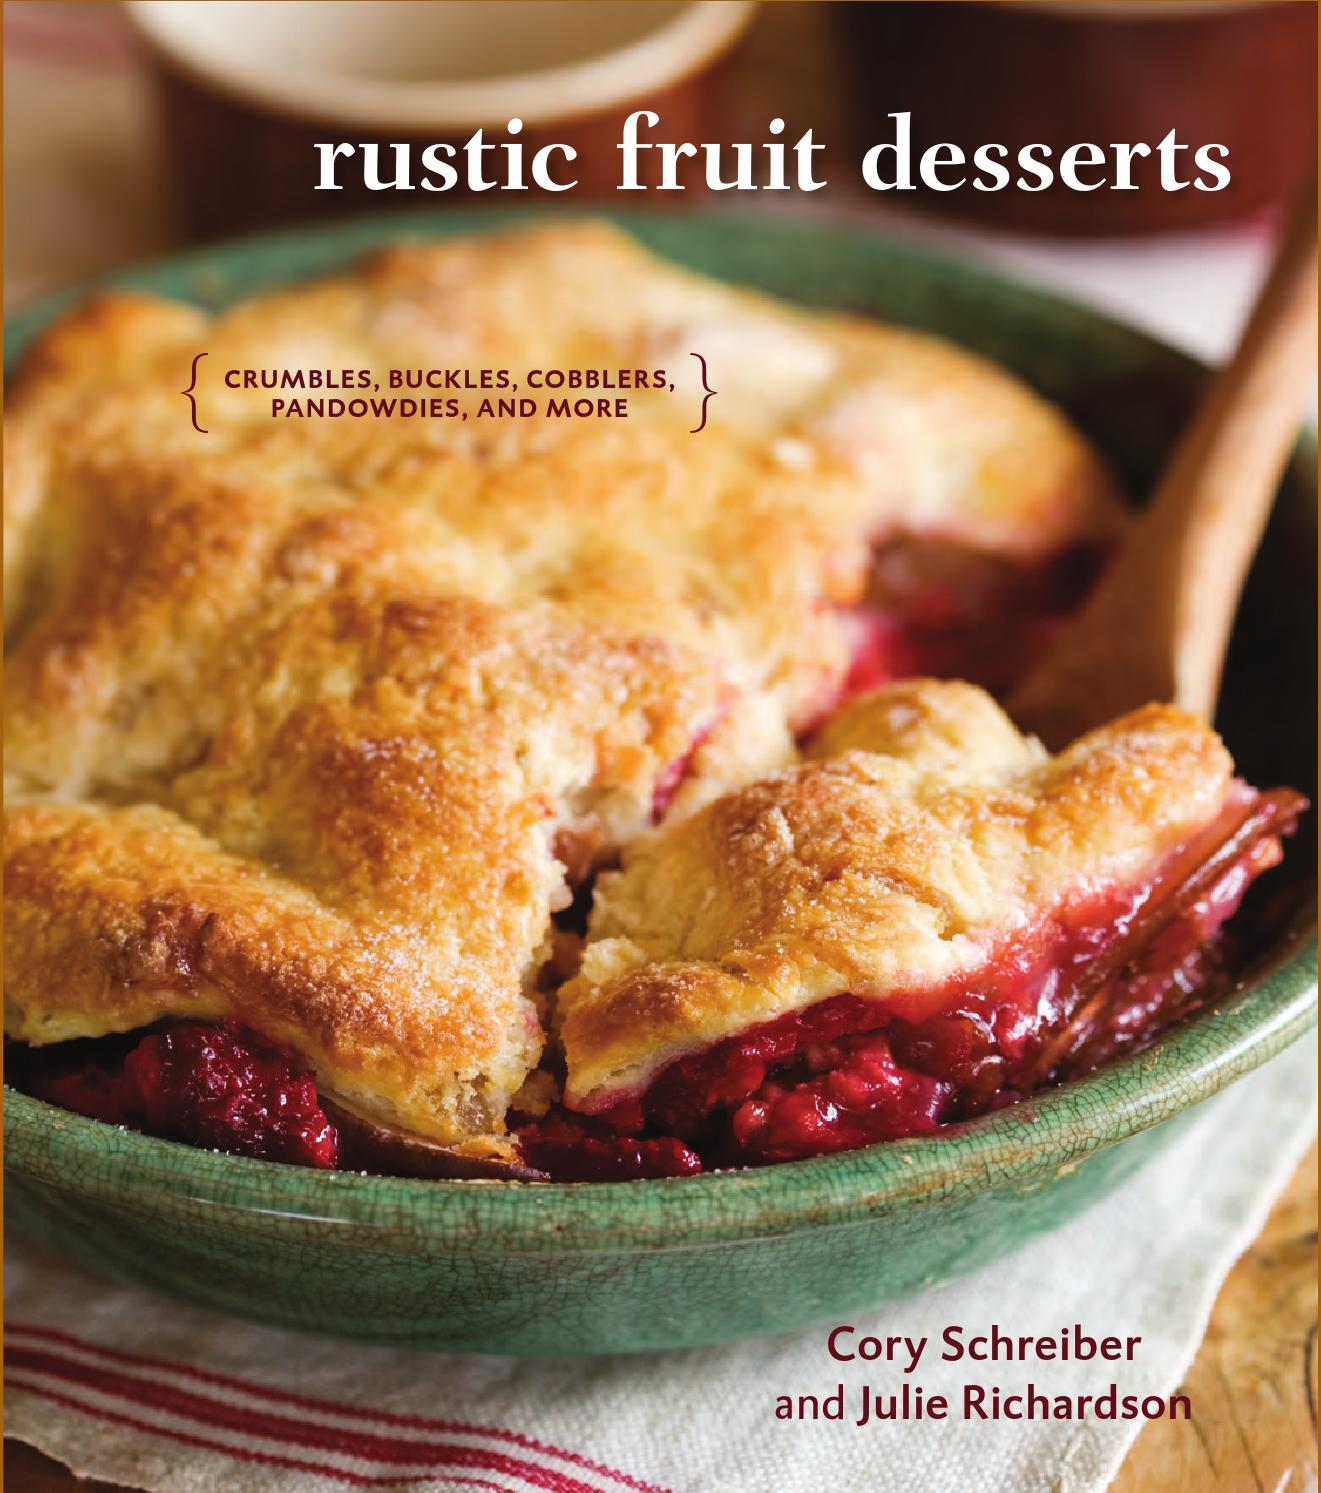 pictures Chef Richards Cherry-Filled Baked Peach With Pie Topping